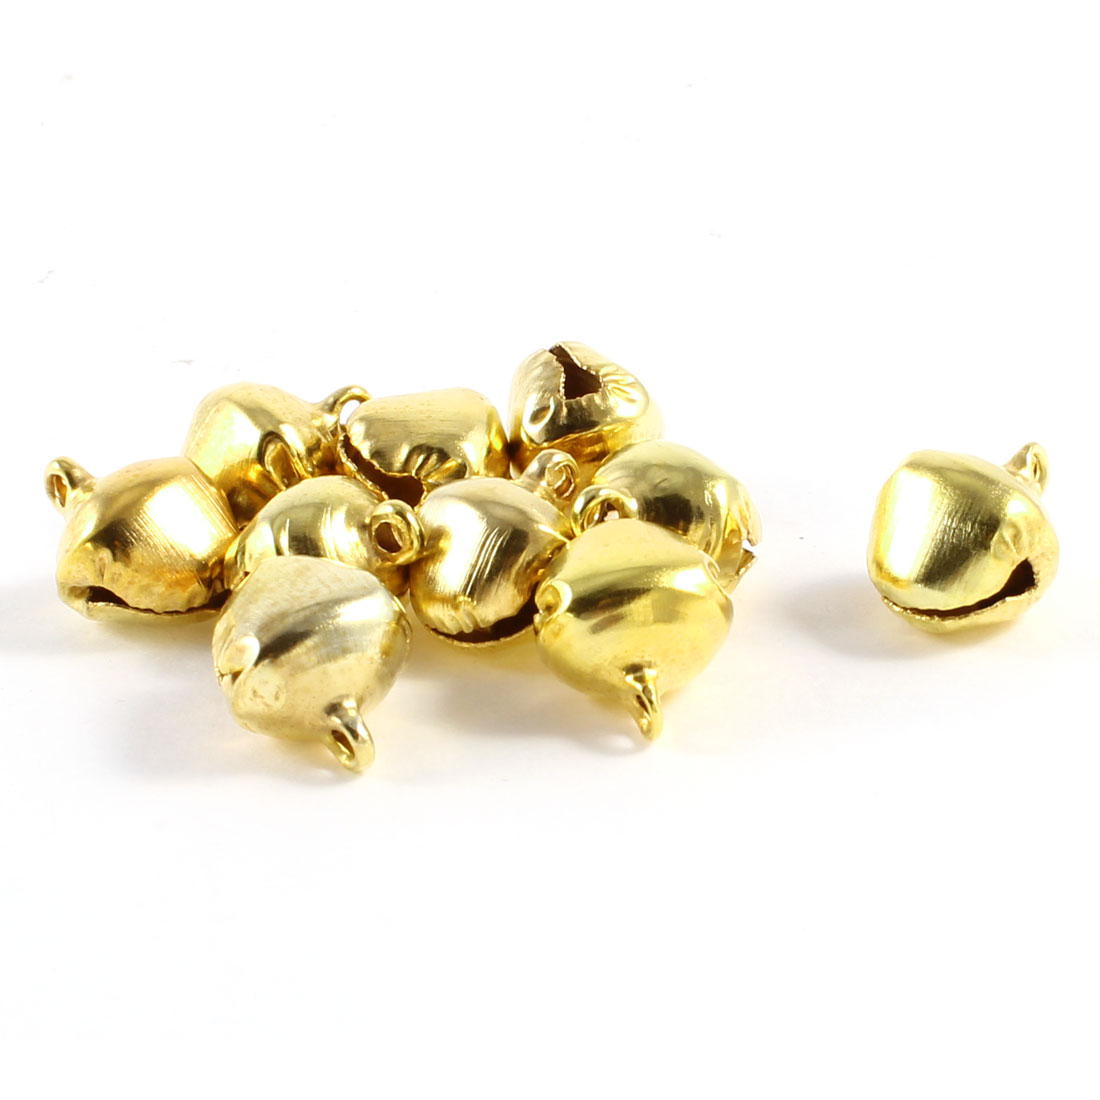 12mm Dia Gold Tone Ring Bells Christmas Tree Decor Xmas Ornament 10 Pcs